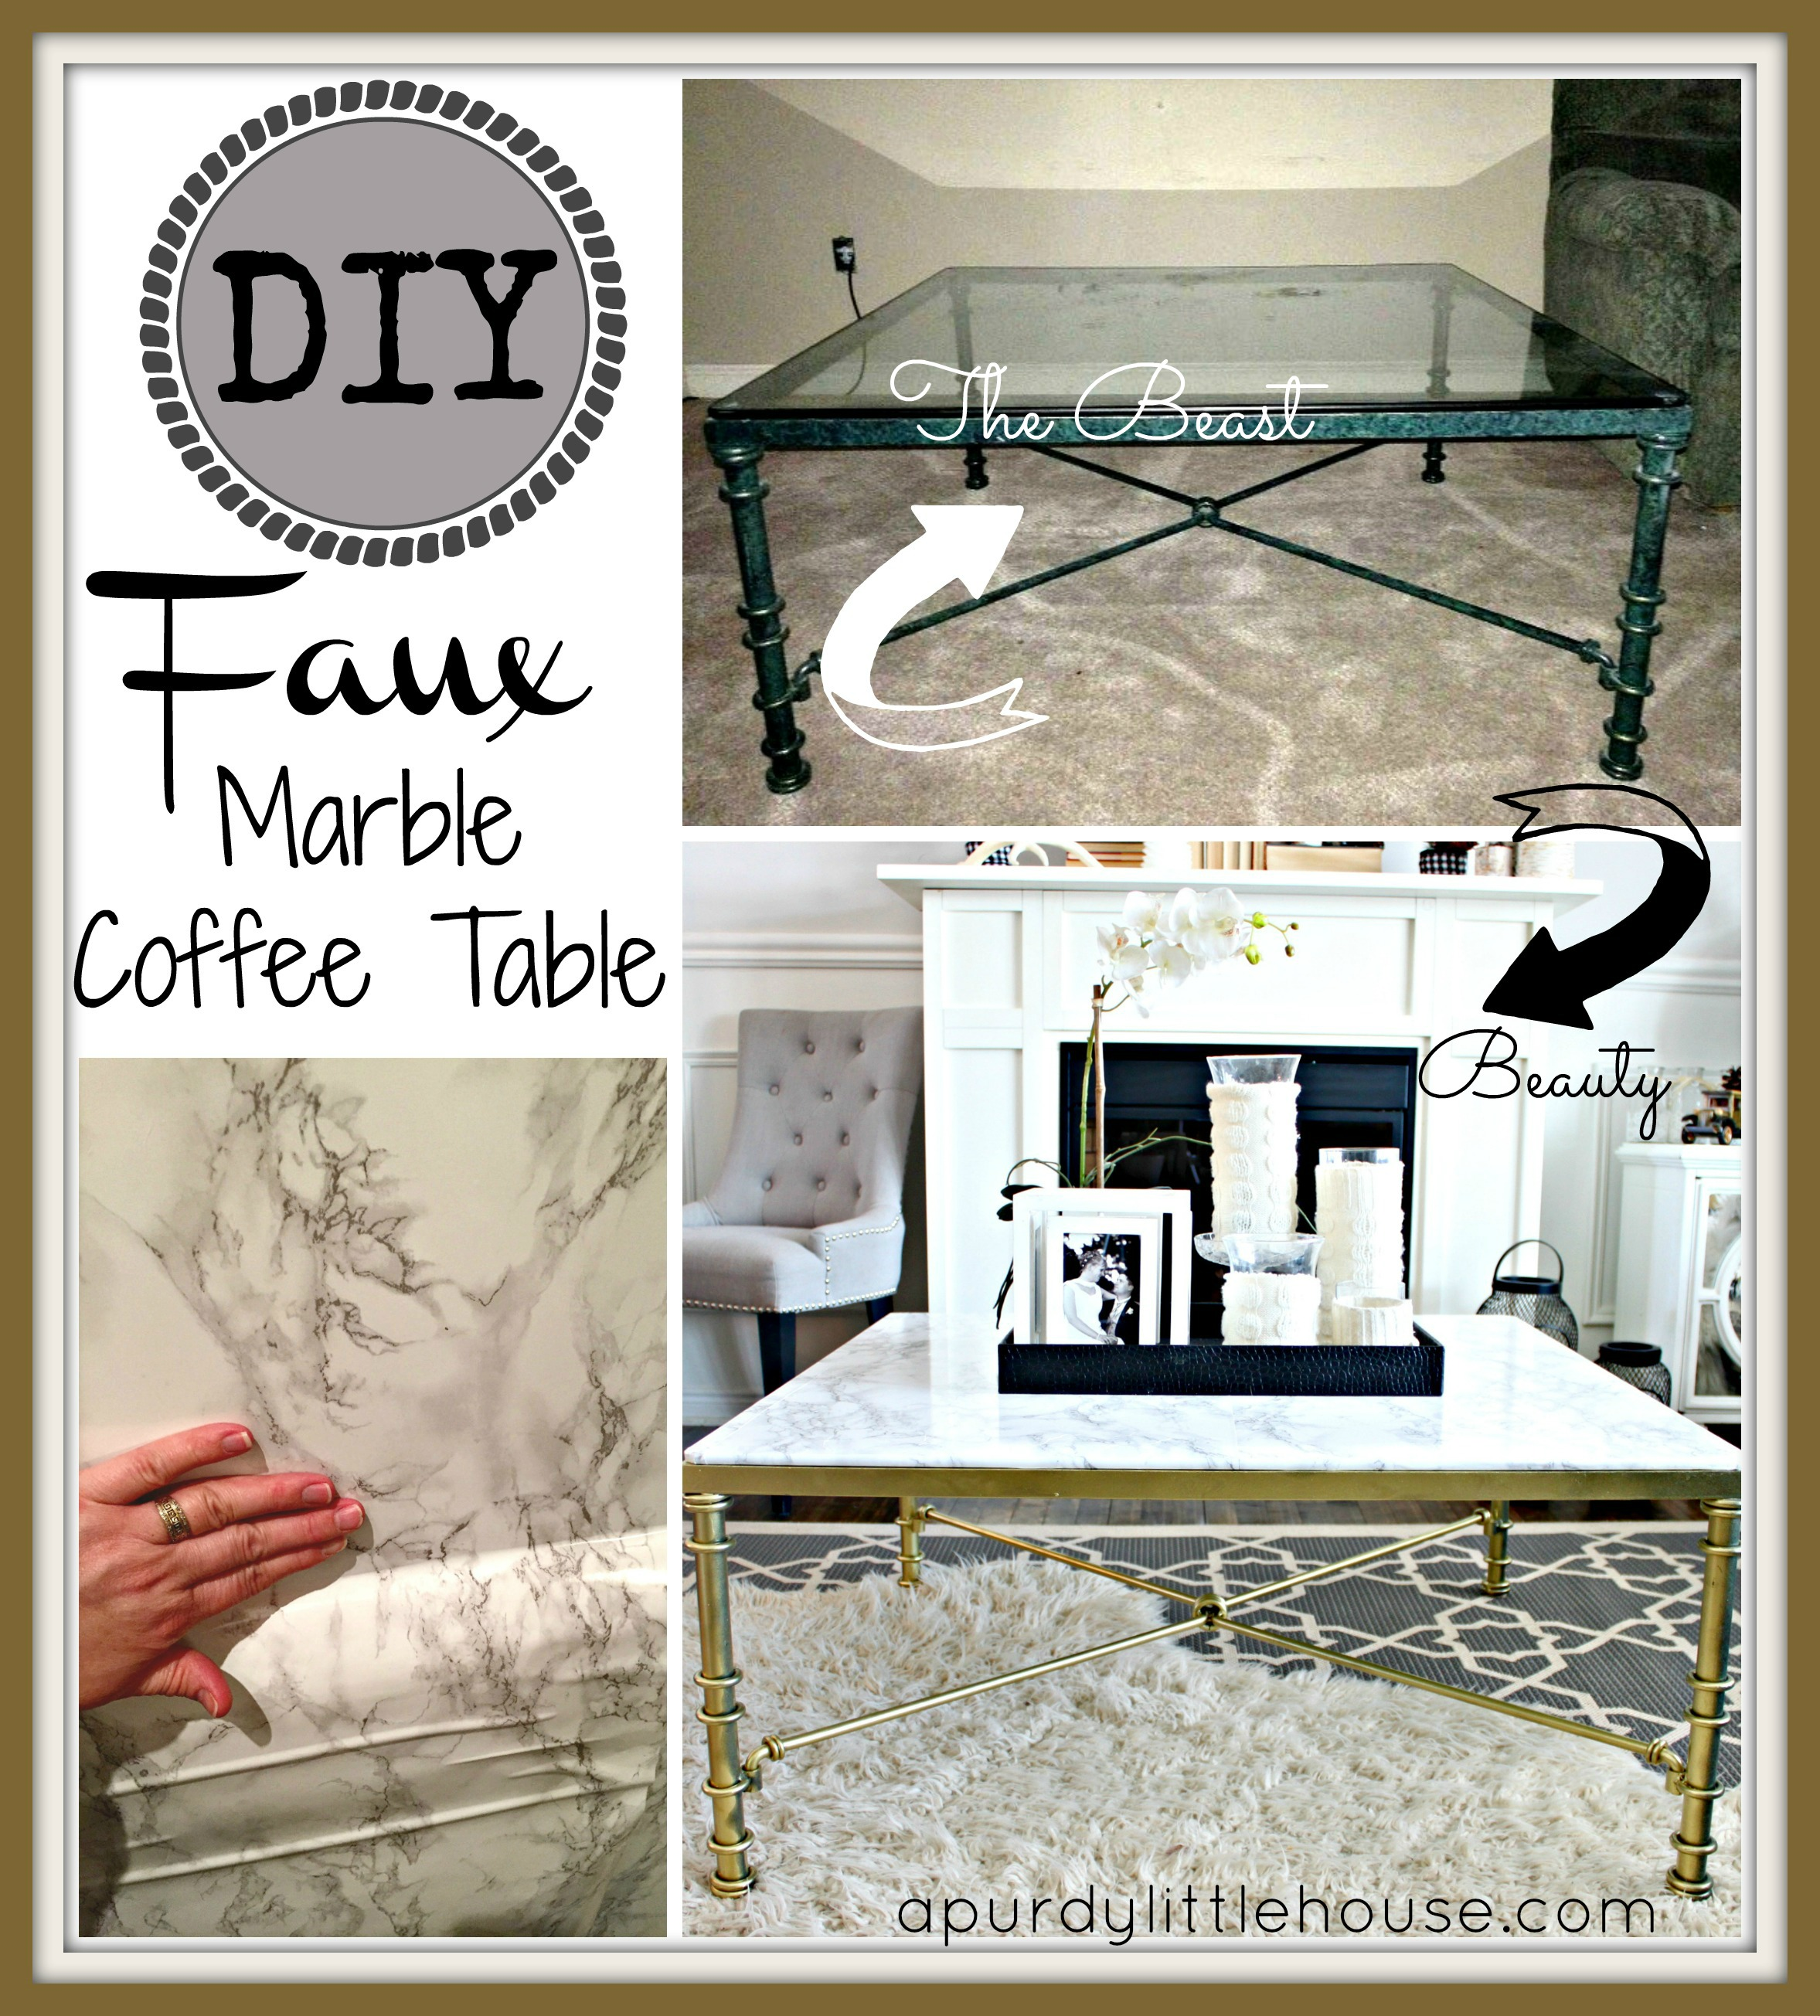 DIY Faux Marble Coffee Table. See how I transformed this out dated glass coffee table into a marble showpiece using faux marble